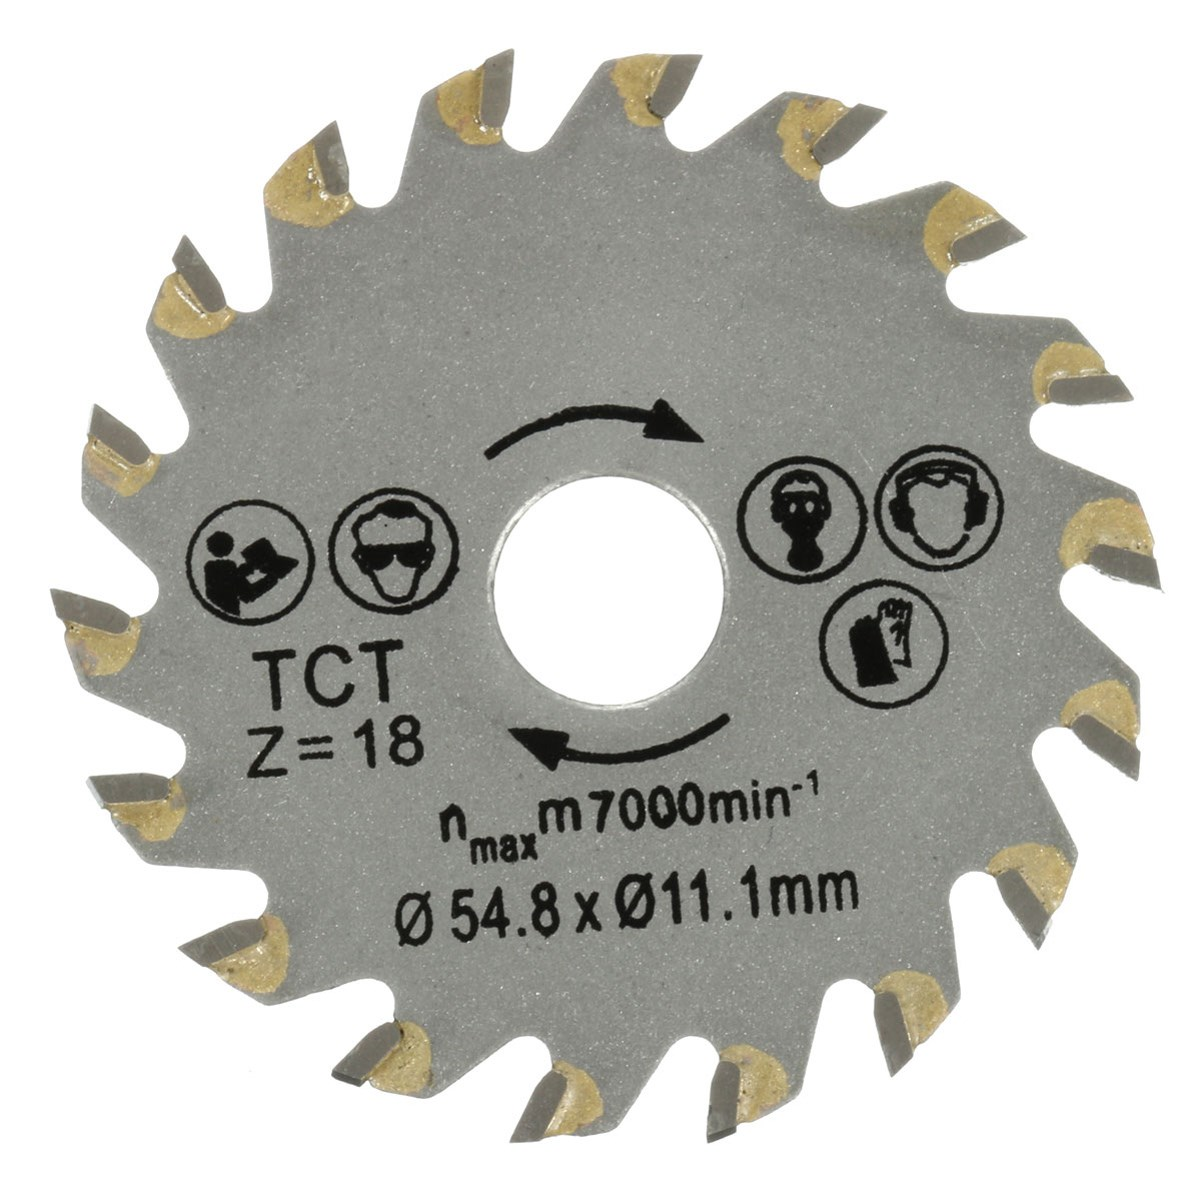 High Quality 1PC Circular TCT Saw Blade 18 Teeth 54.8mm Dia Fits Concrete Cement Wood Cutting Tools Hot Sale